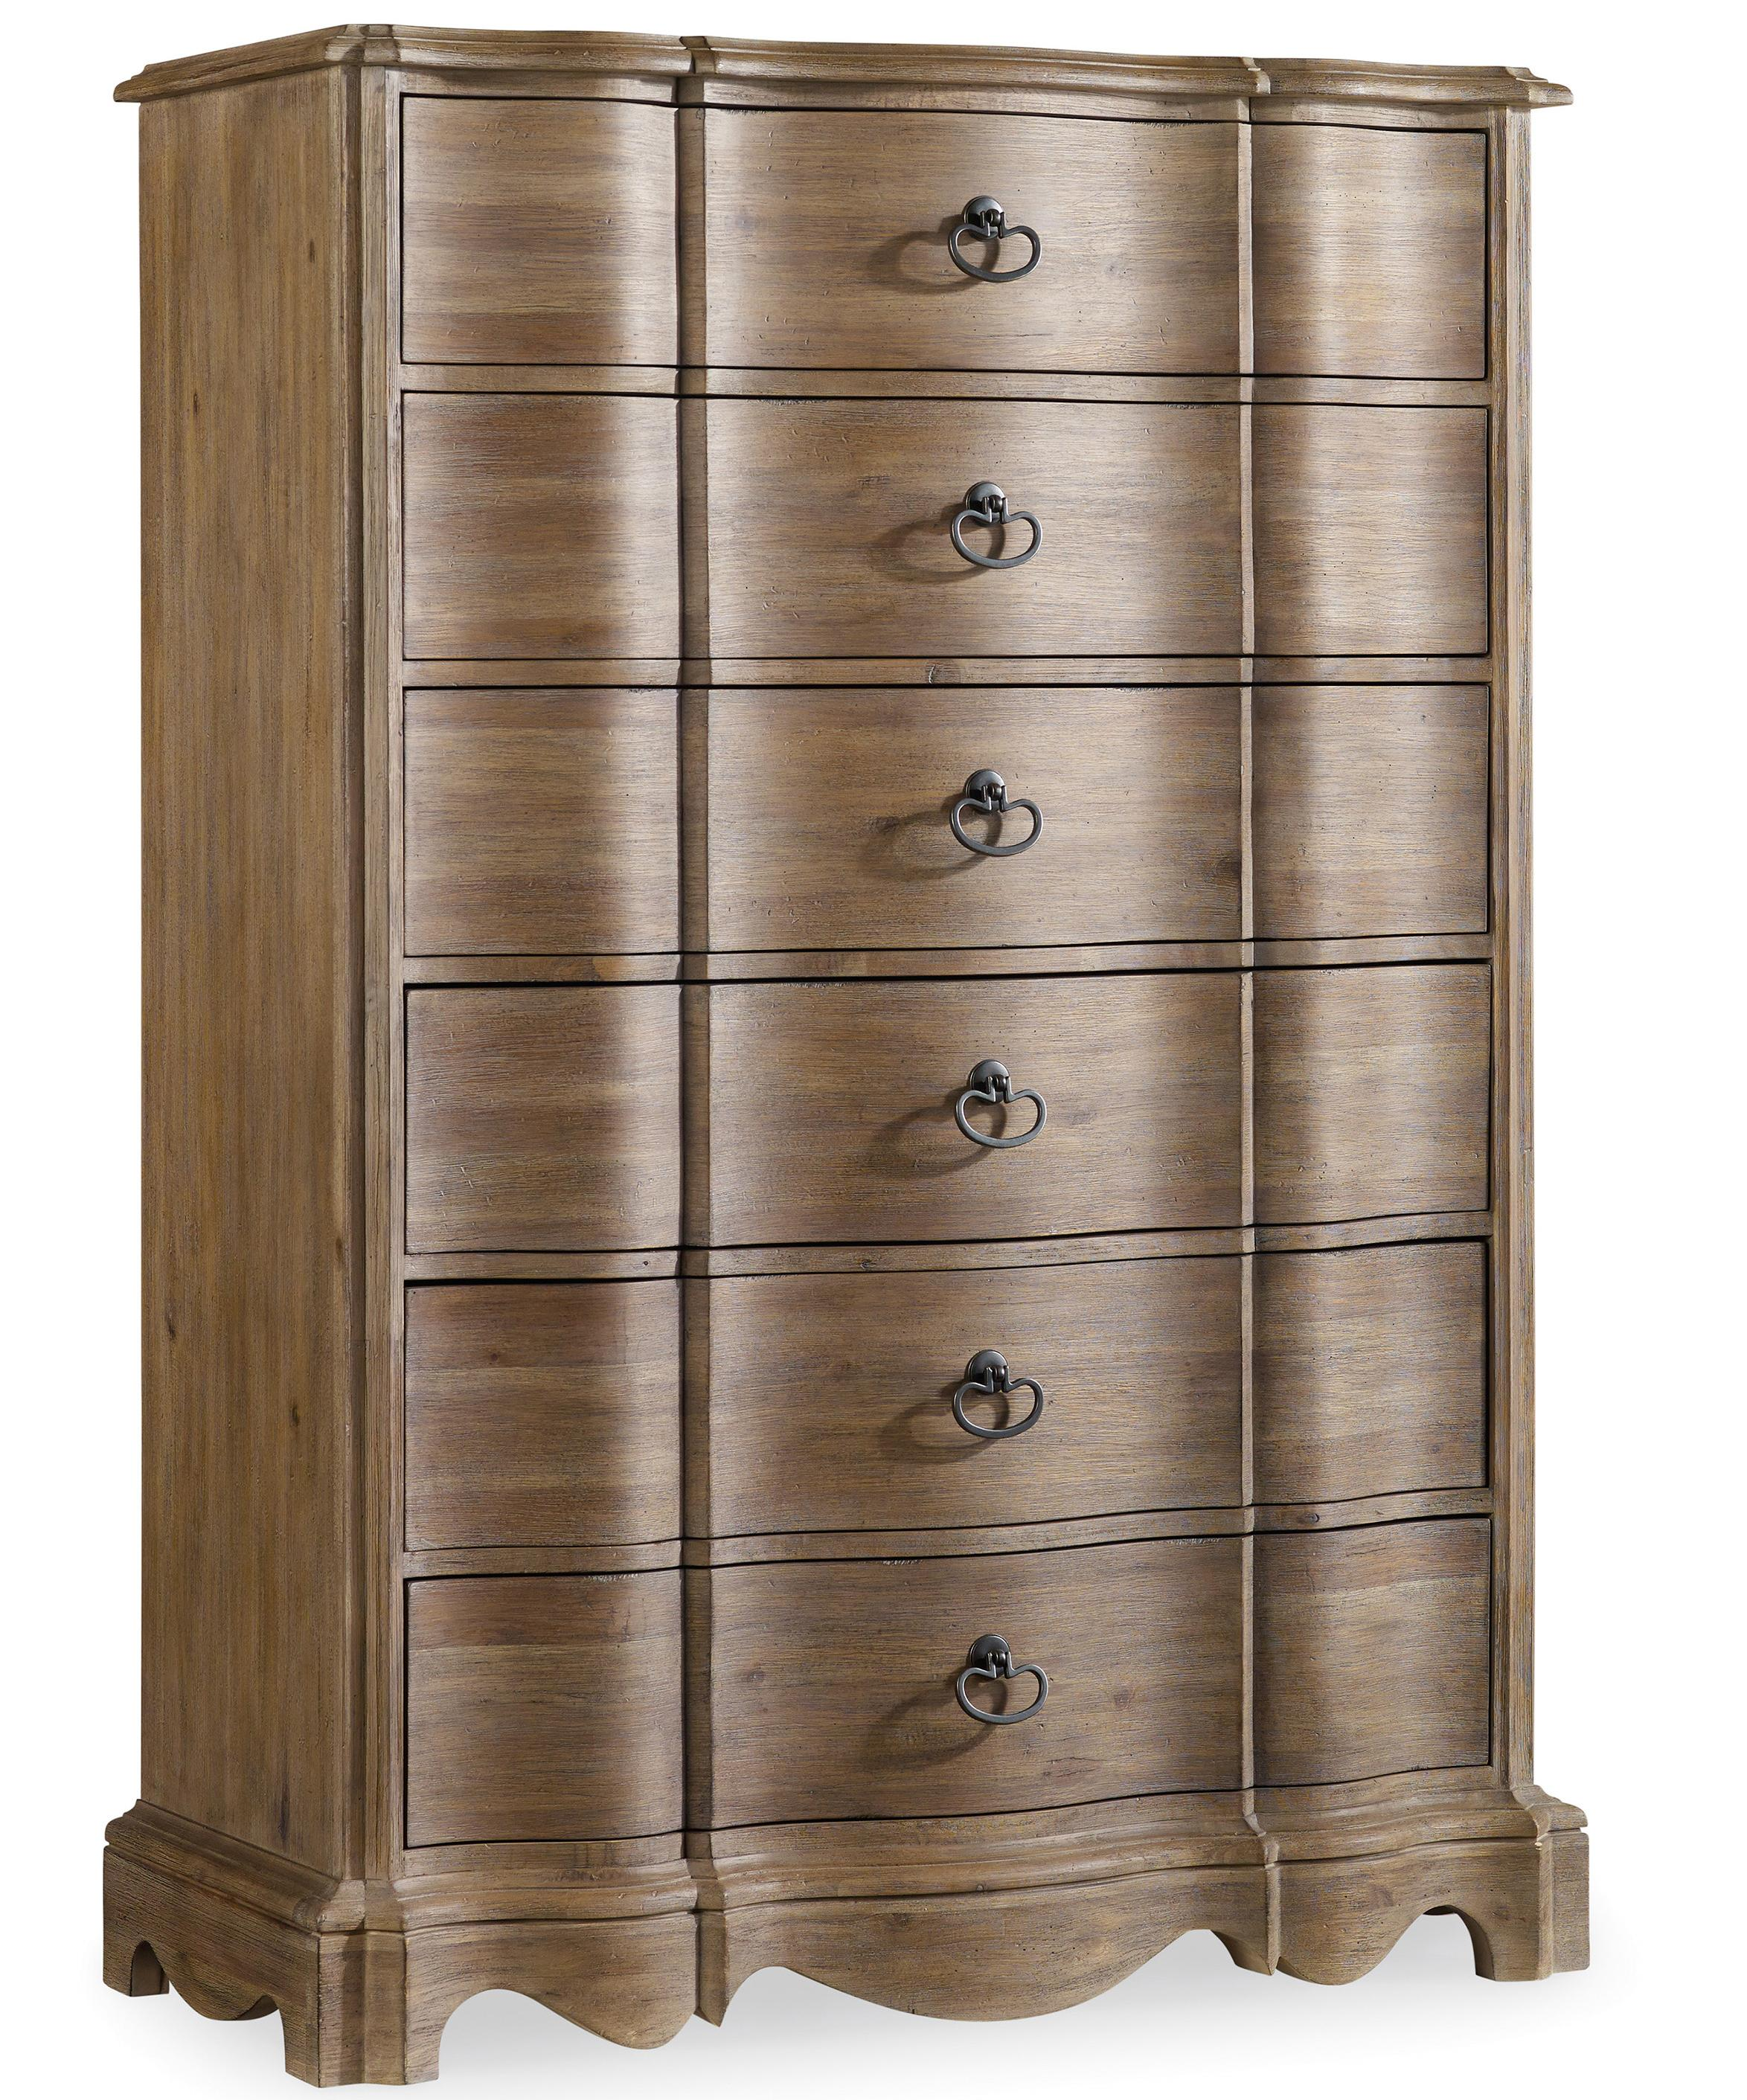 Hooker Furniture Corsica Drawer Chest - Item Number: 5180-90010